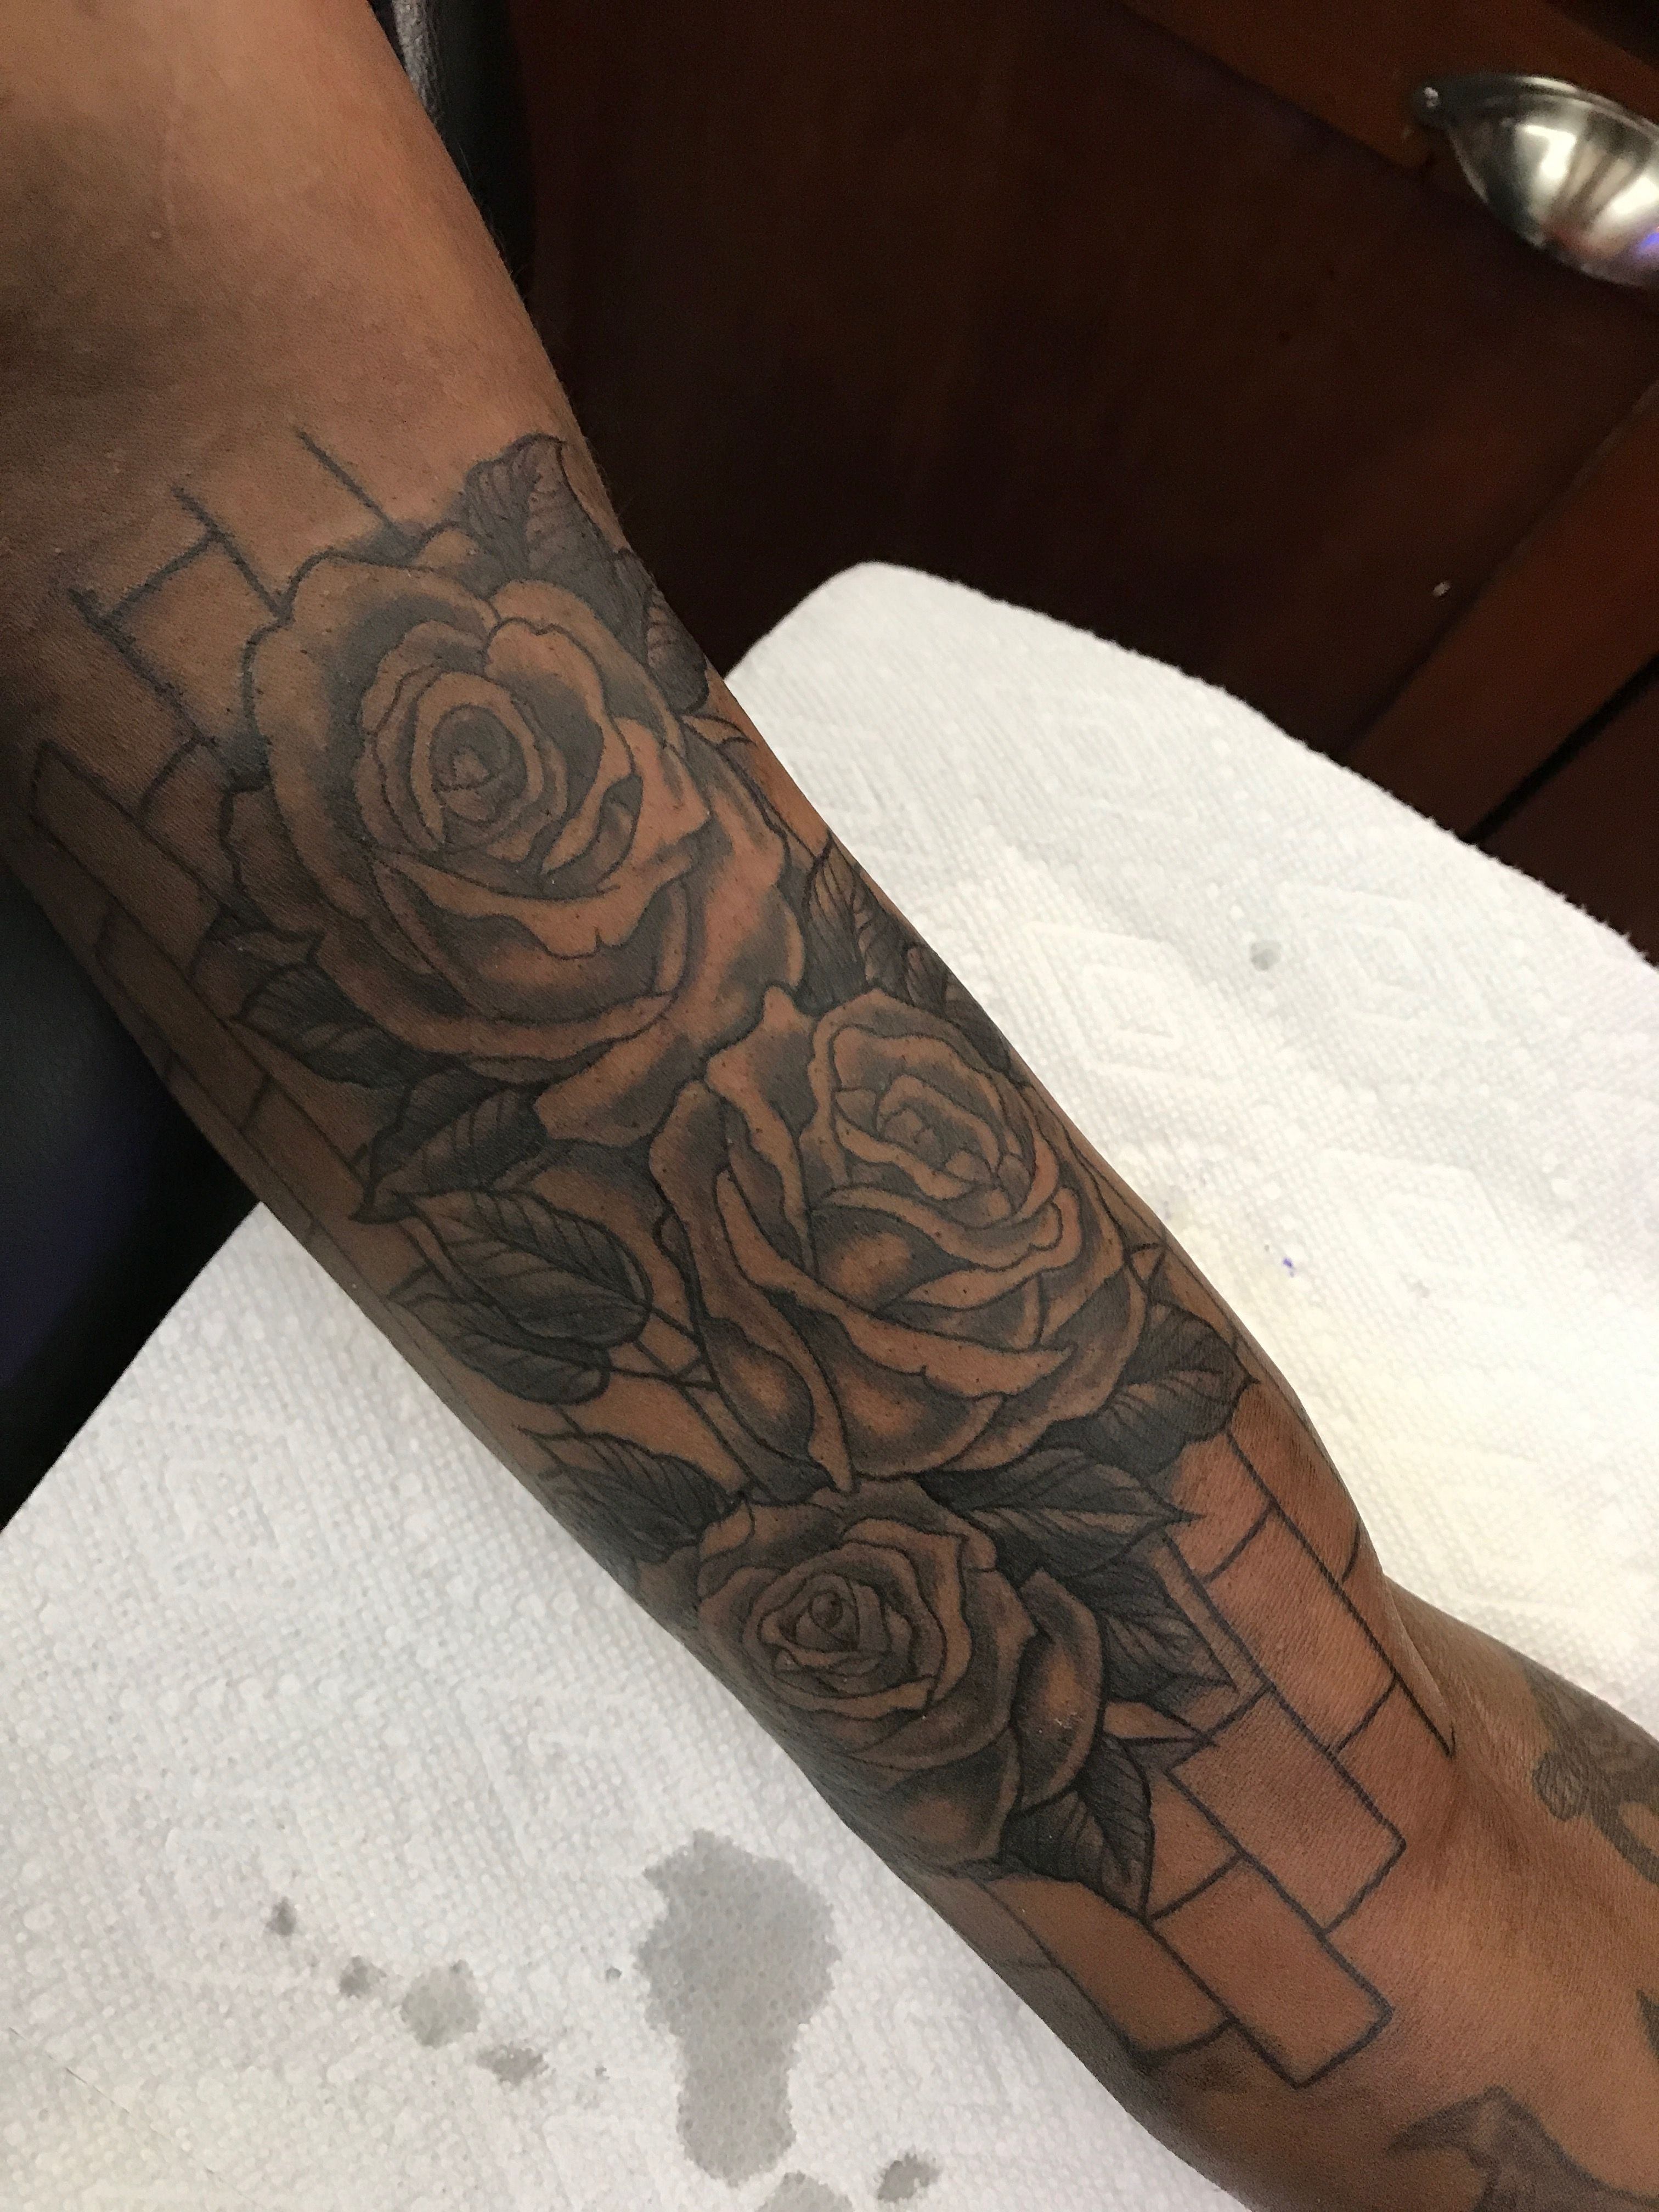 c937b96f7 3 Black Roses with brick wall background tattoo | Heart Rose Tattoo ...